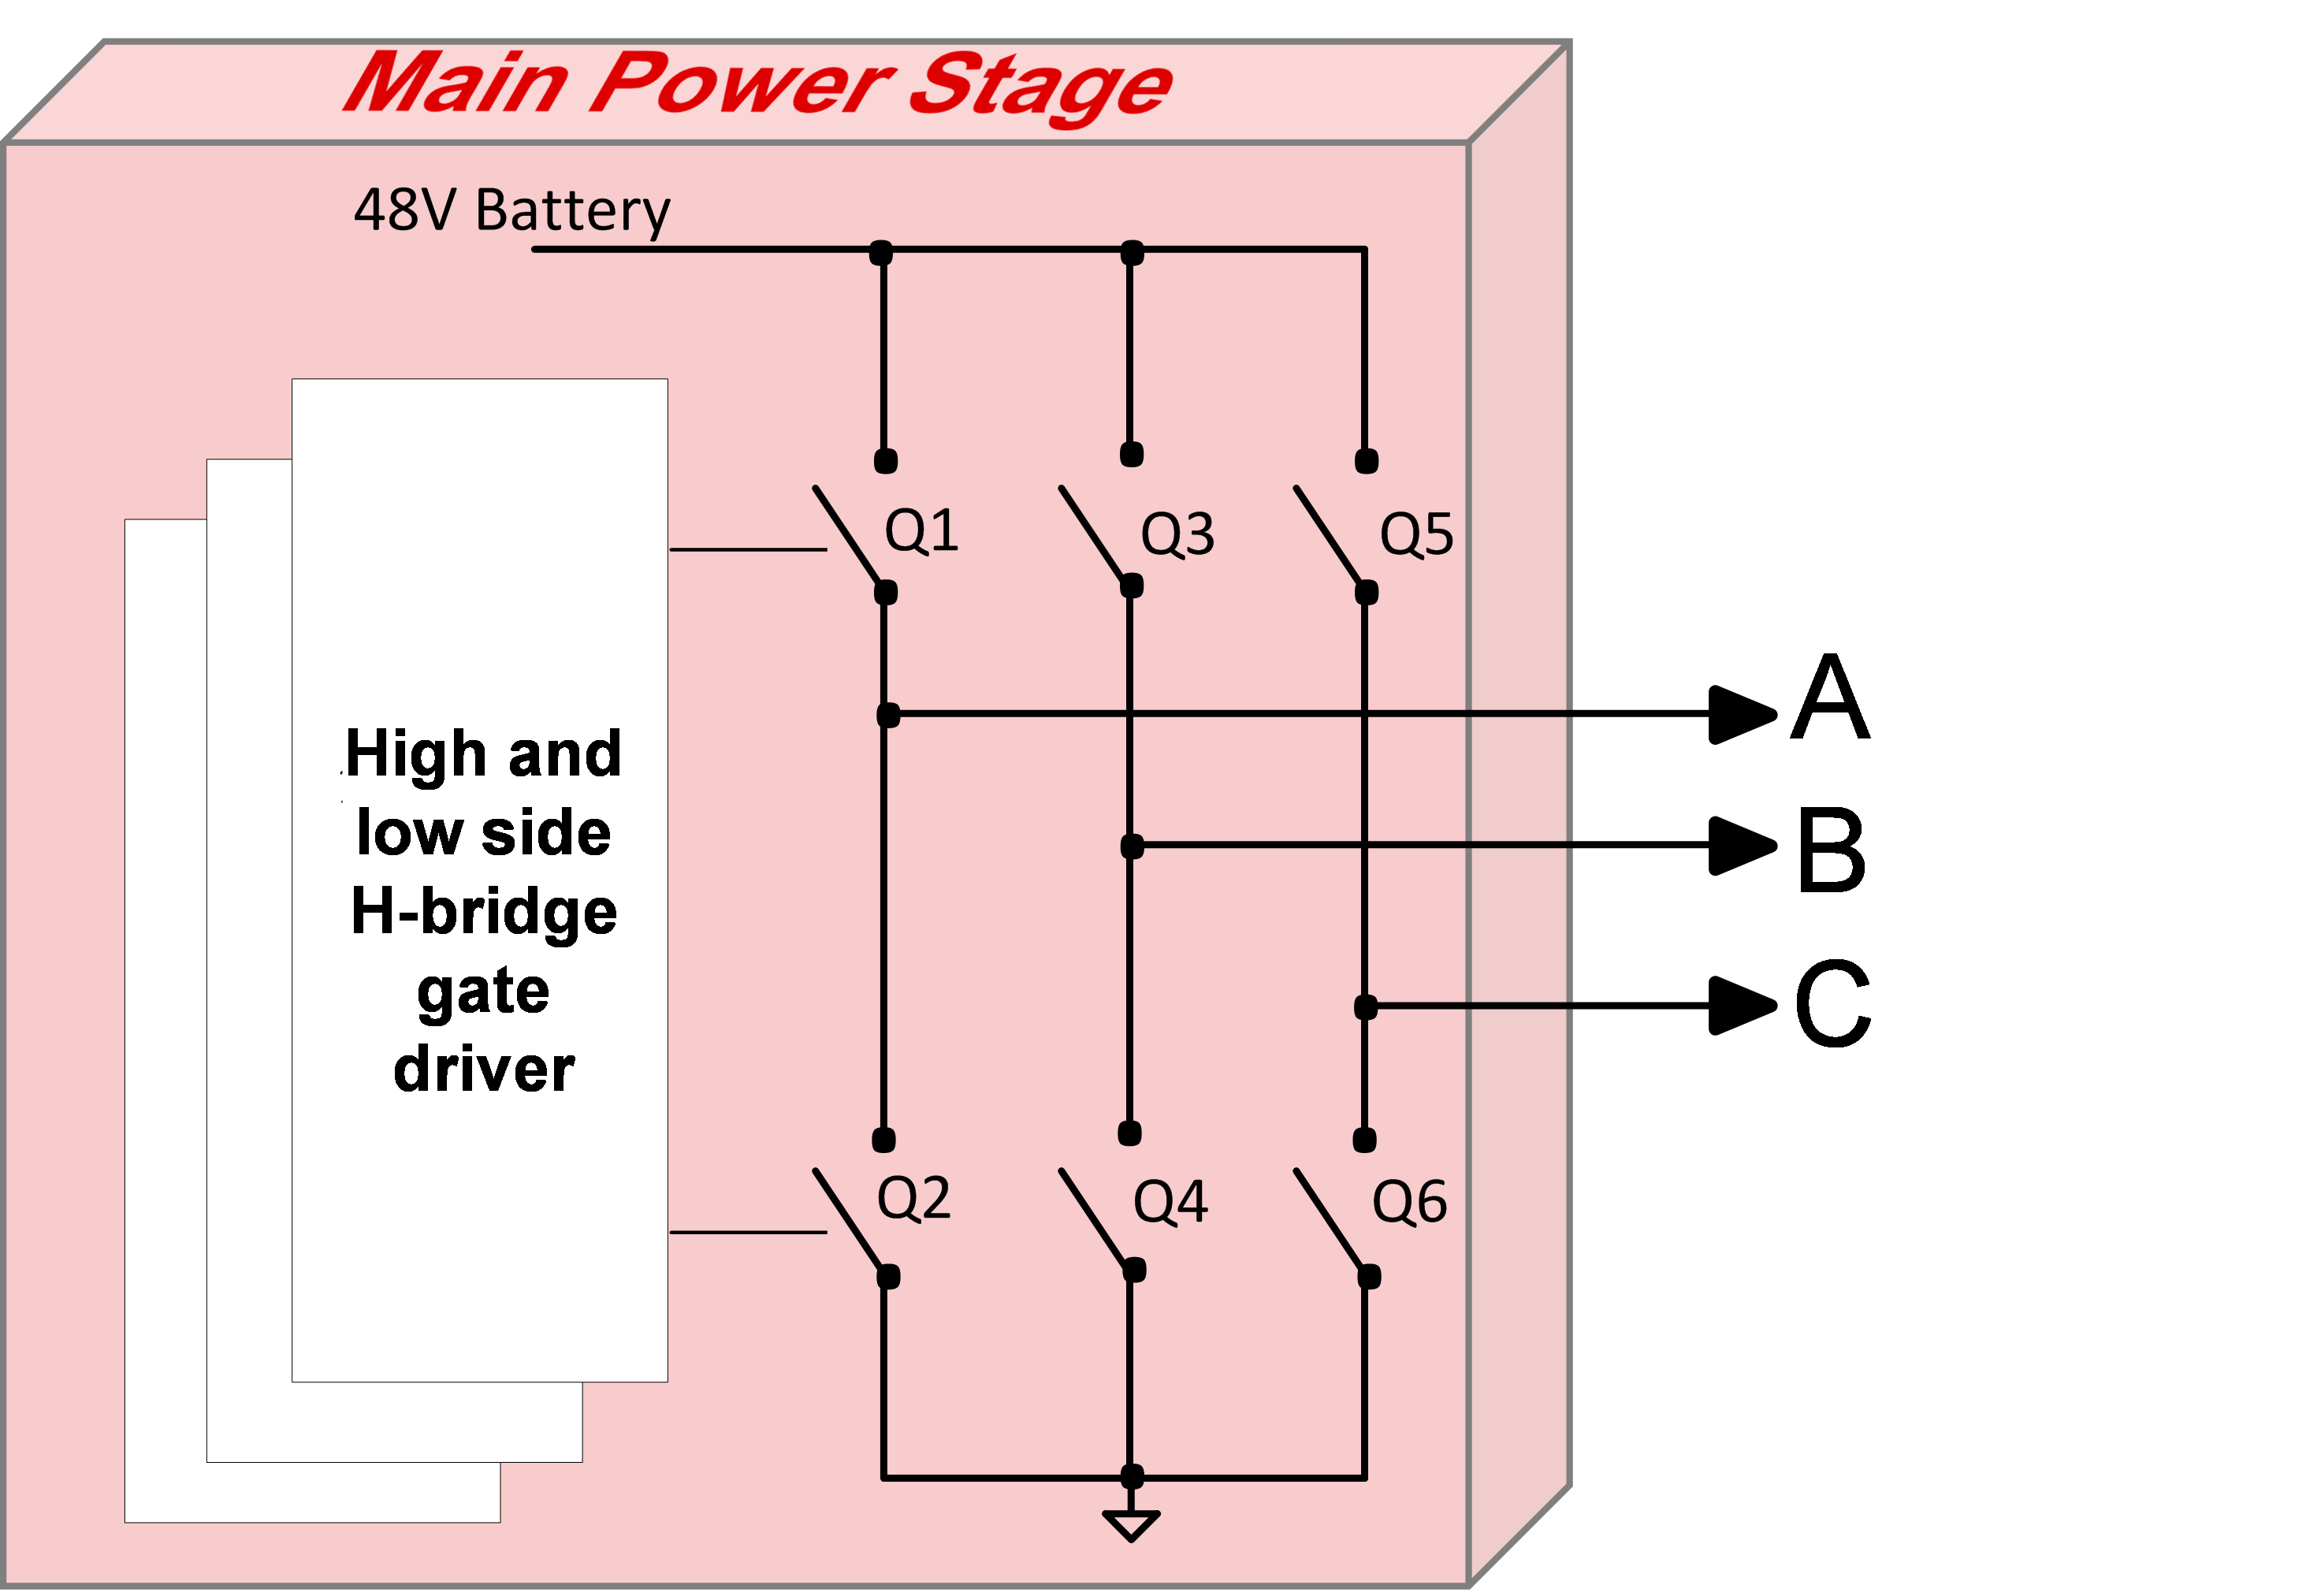 48v Systems Driving Power Mosfets Efficiently And Robustly Behind Diagram Further H Bridge Motor Driver On Inverter Schematic Take A Look At The Stage Of System Shown In Figure 1 It Includes Three Mosfet Half Bridges Corresponding High Low Side Gate